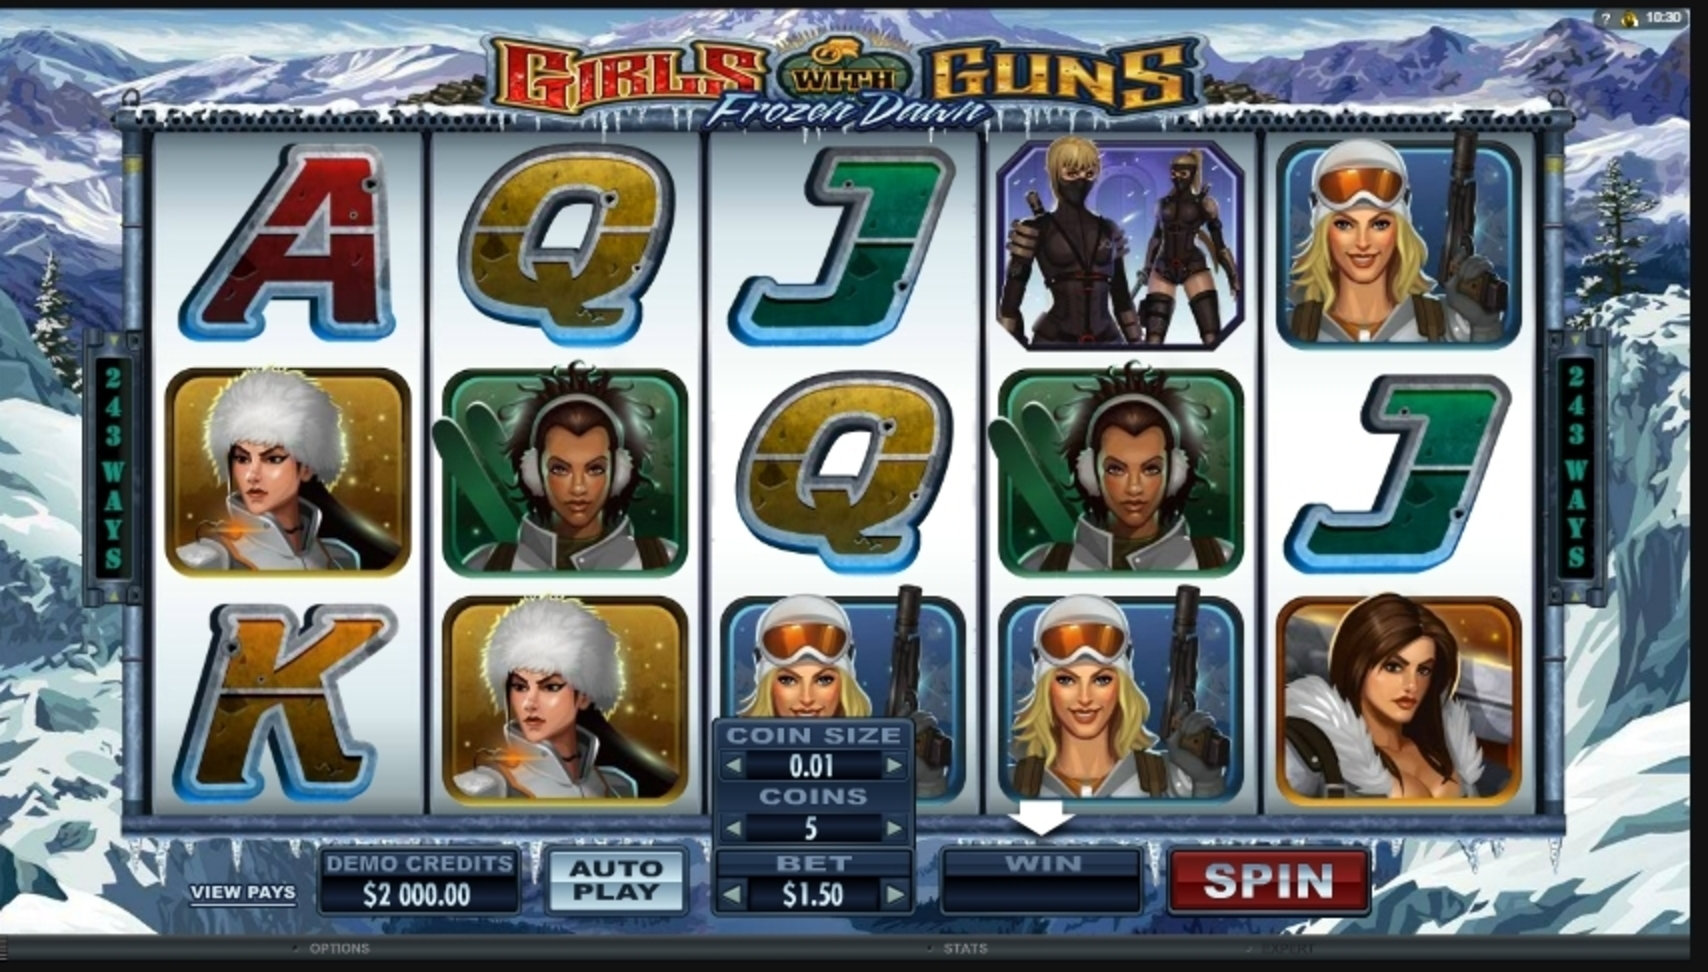 Reels in Girls With Guns - Frozen Dawn Slot Game by Microgaming